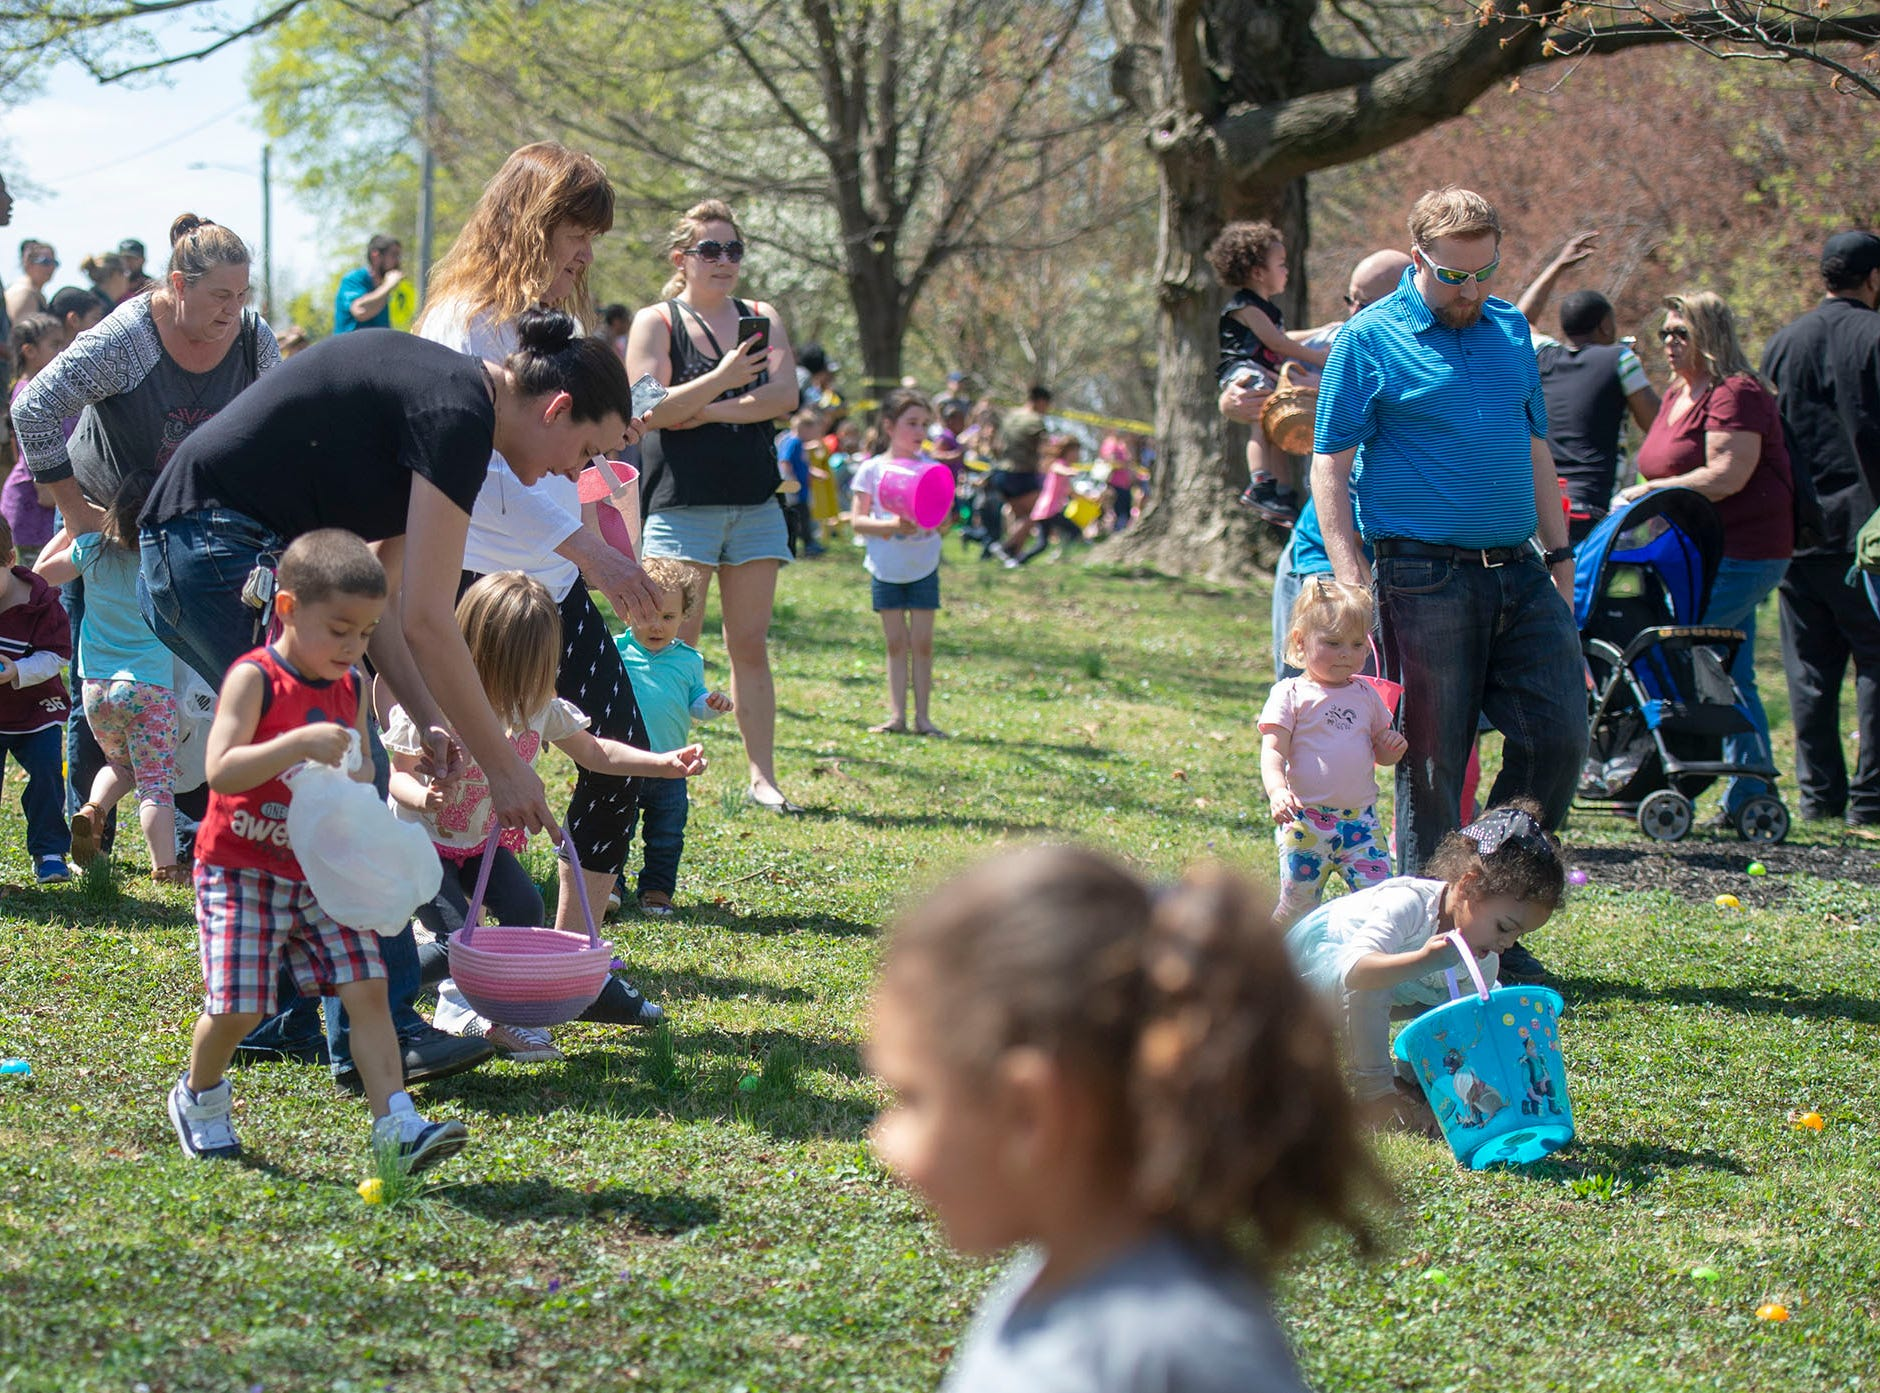 And they're off! A couple of minutes later all of the eggs in the 1-3-year-old division were found at the City of York's Easter Egg Hunt at Kiwanis Lake on Saturday, April 13, 2019.